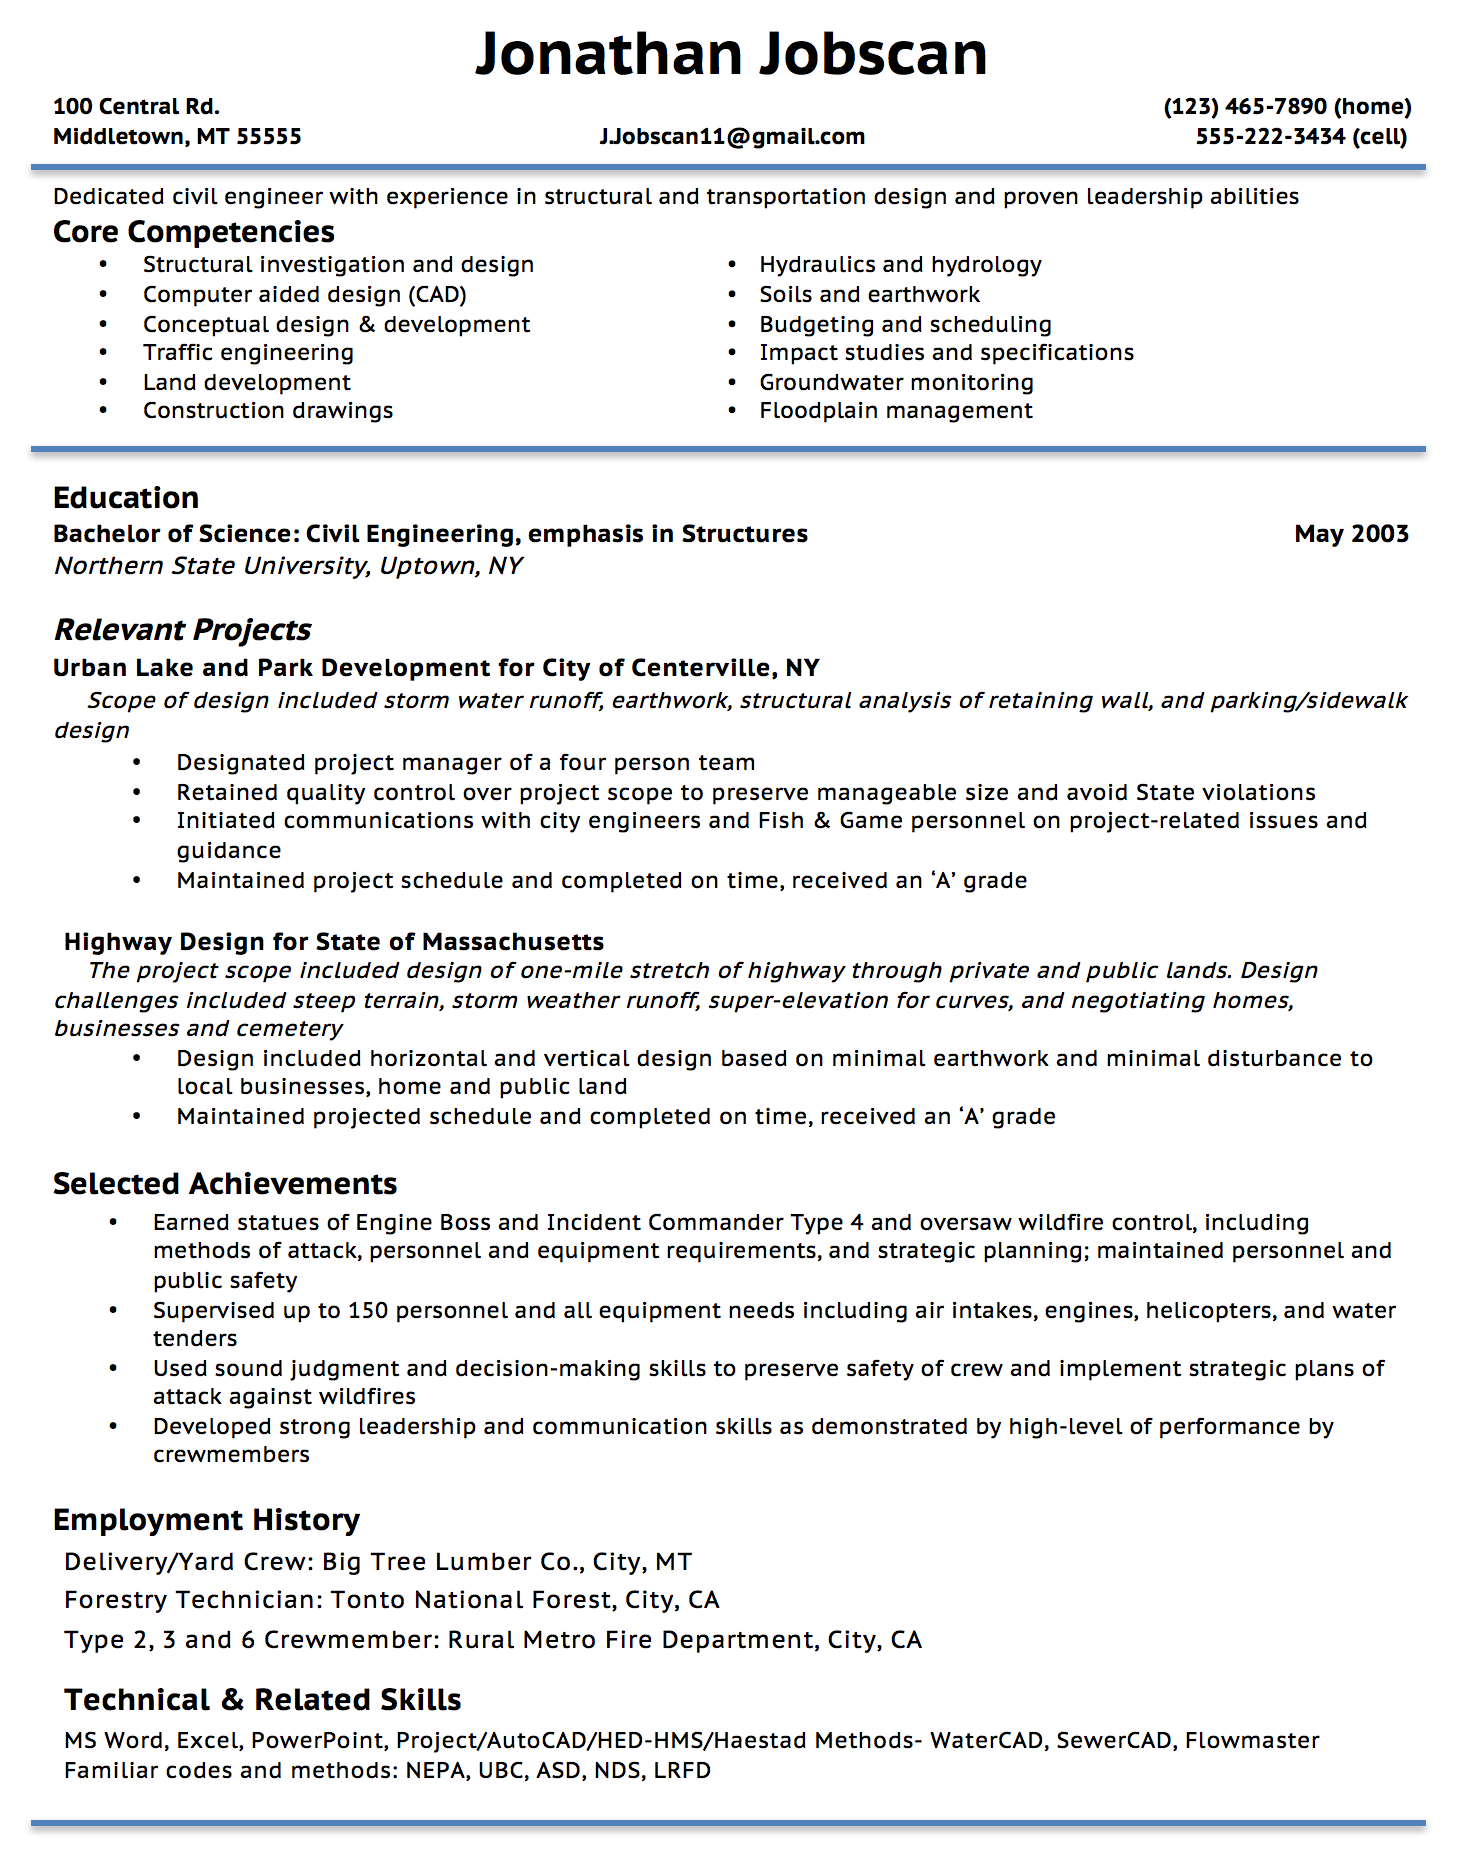 Opposenewapstandardsus  Winning Resume Writing Guide  Jobscan With Hot Example Of A Functional Resume Format With Delectable Good Resume Template Also Usa Jobs Resume Example In Addition Aviation Resume And Marketing Resume Sample As Well As Intelligence Analyst Resume Additionally Video Resume Examples From Jobscanco With Opposenewapstandardsus  Hot Resume Writing Guide  Jobscan With Delectable Example Of A Functional Resume Format And Winning Good Resume Template Also Usa Jobs Resume Example In Addition Aviation Resume From Jobscanco